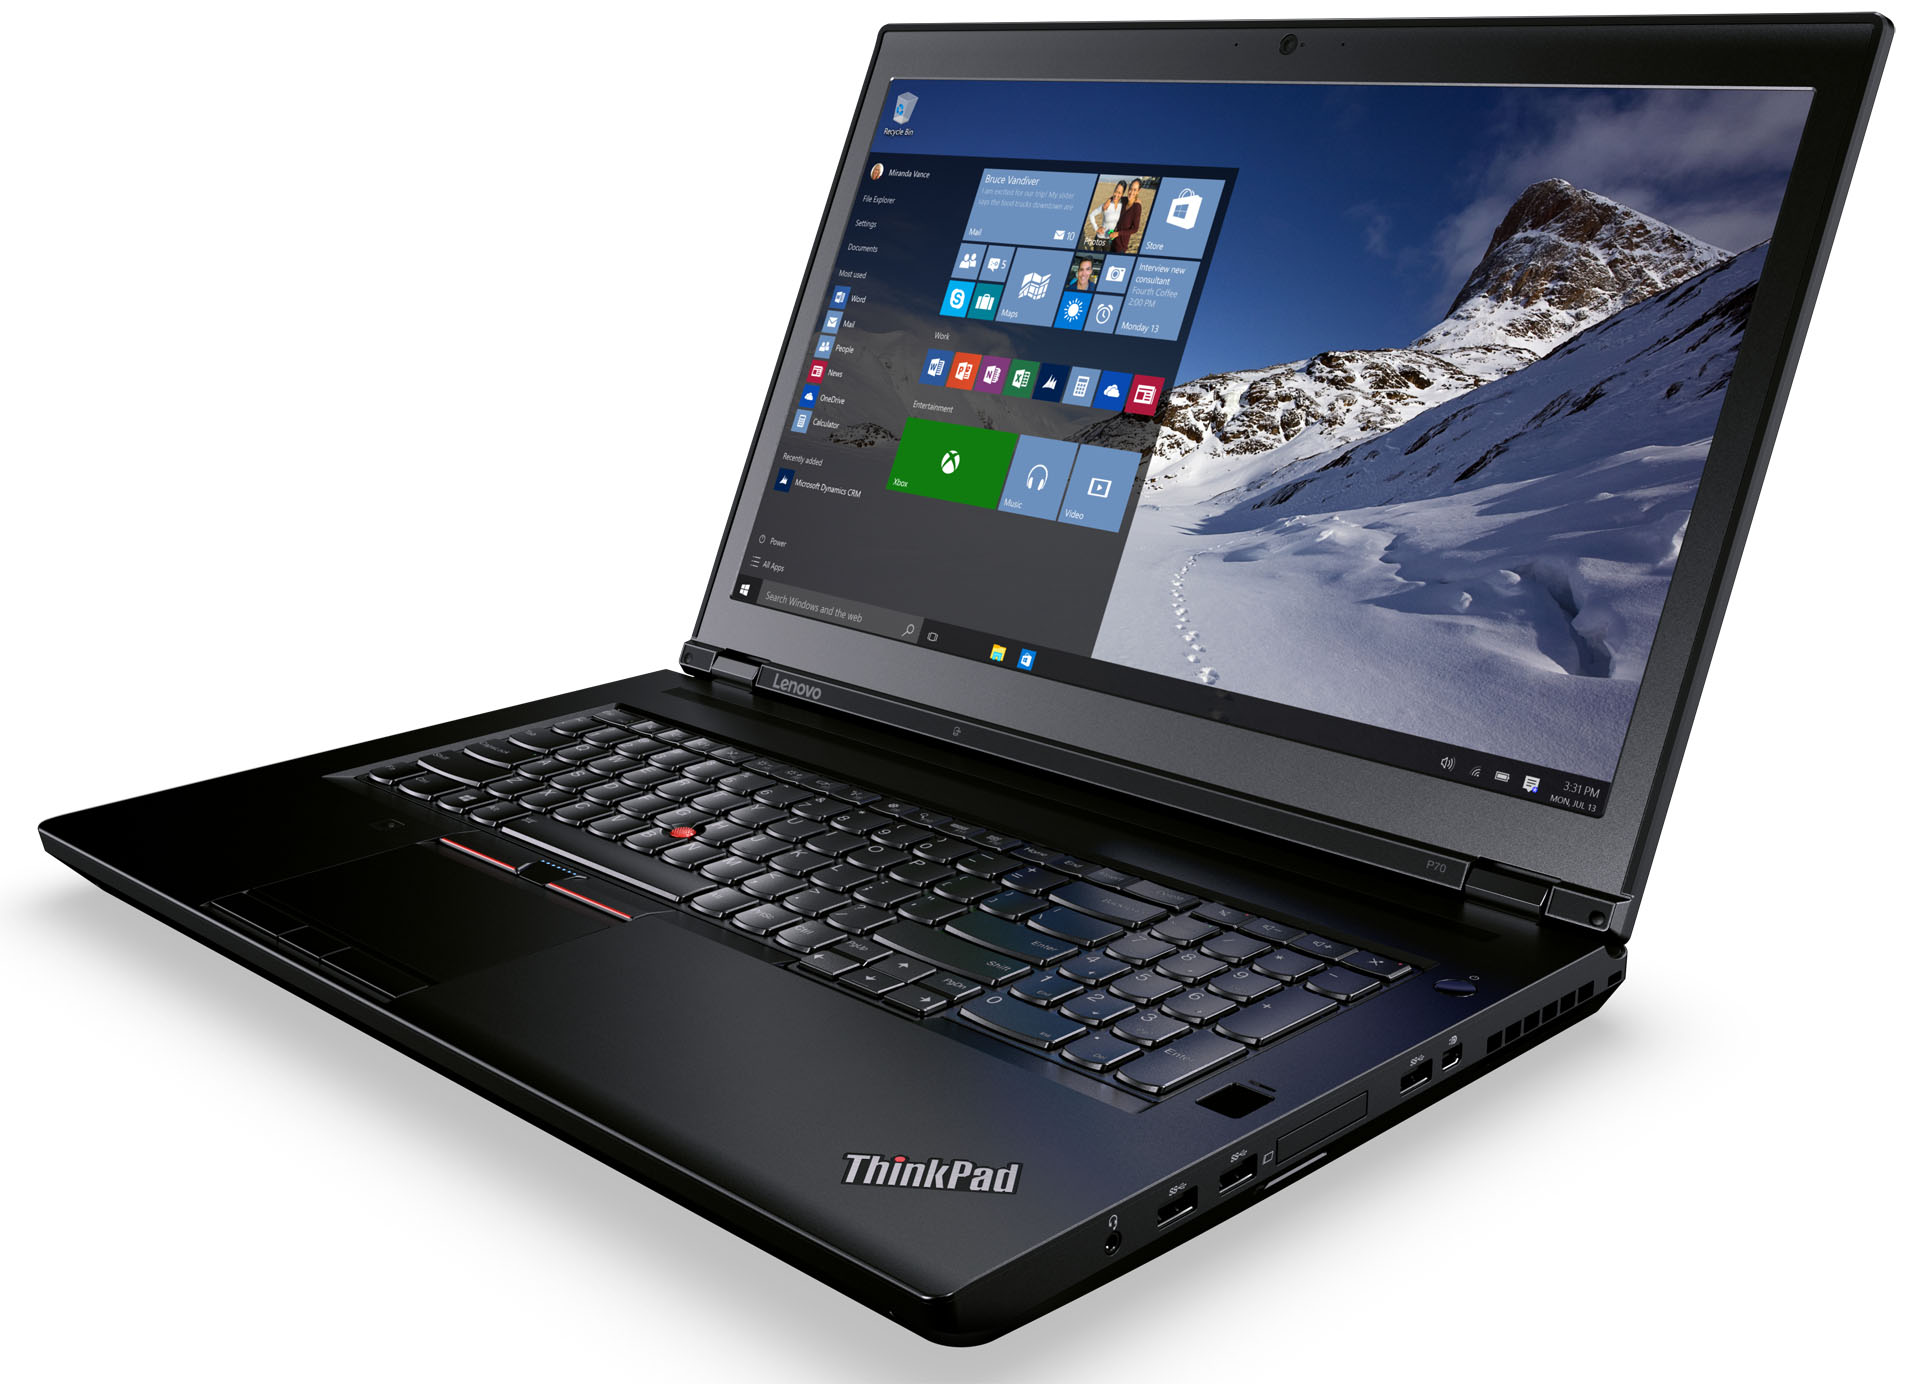 Lenovo ThinkPad P70 Top a306e8d24